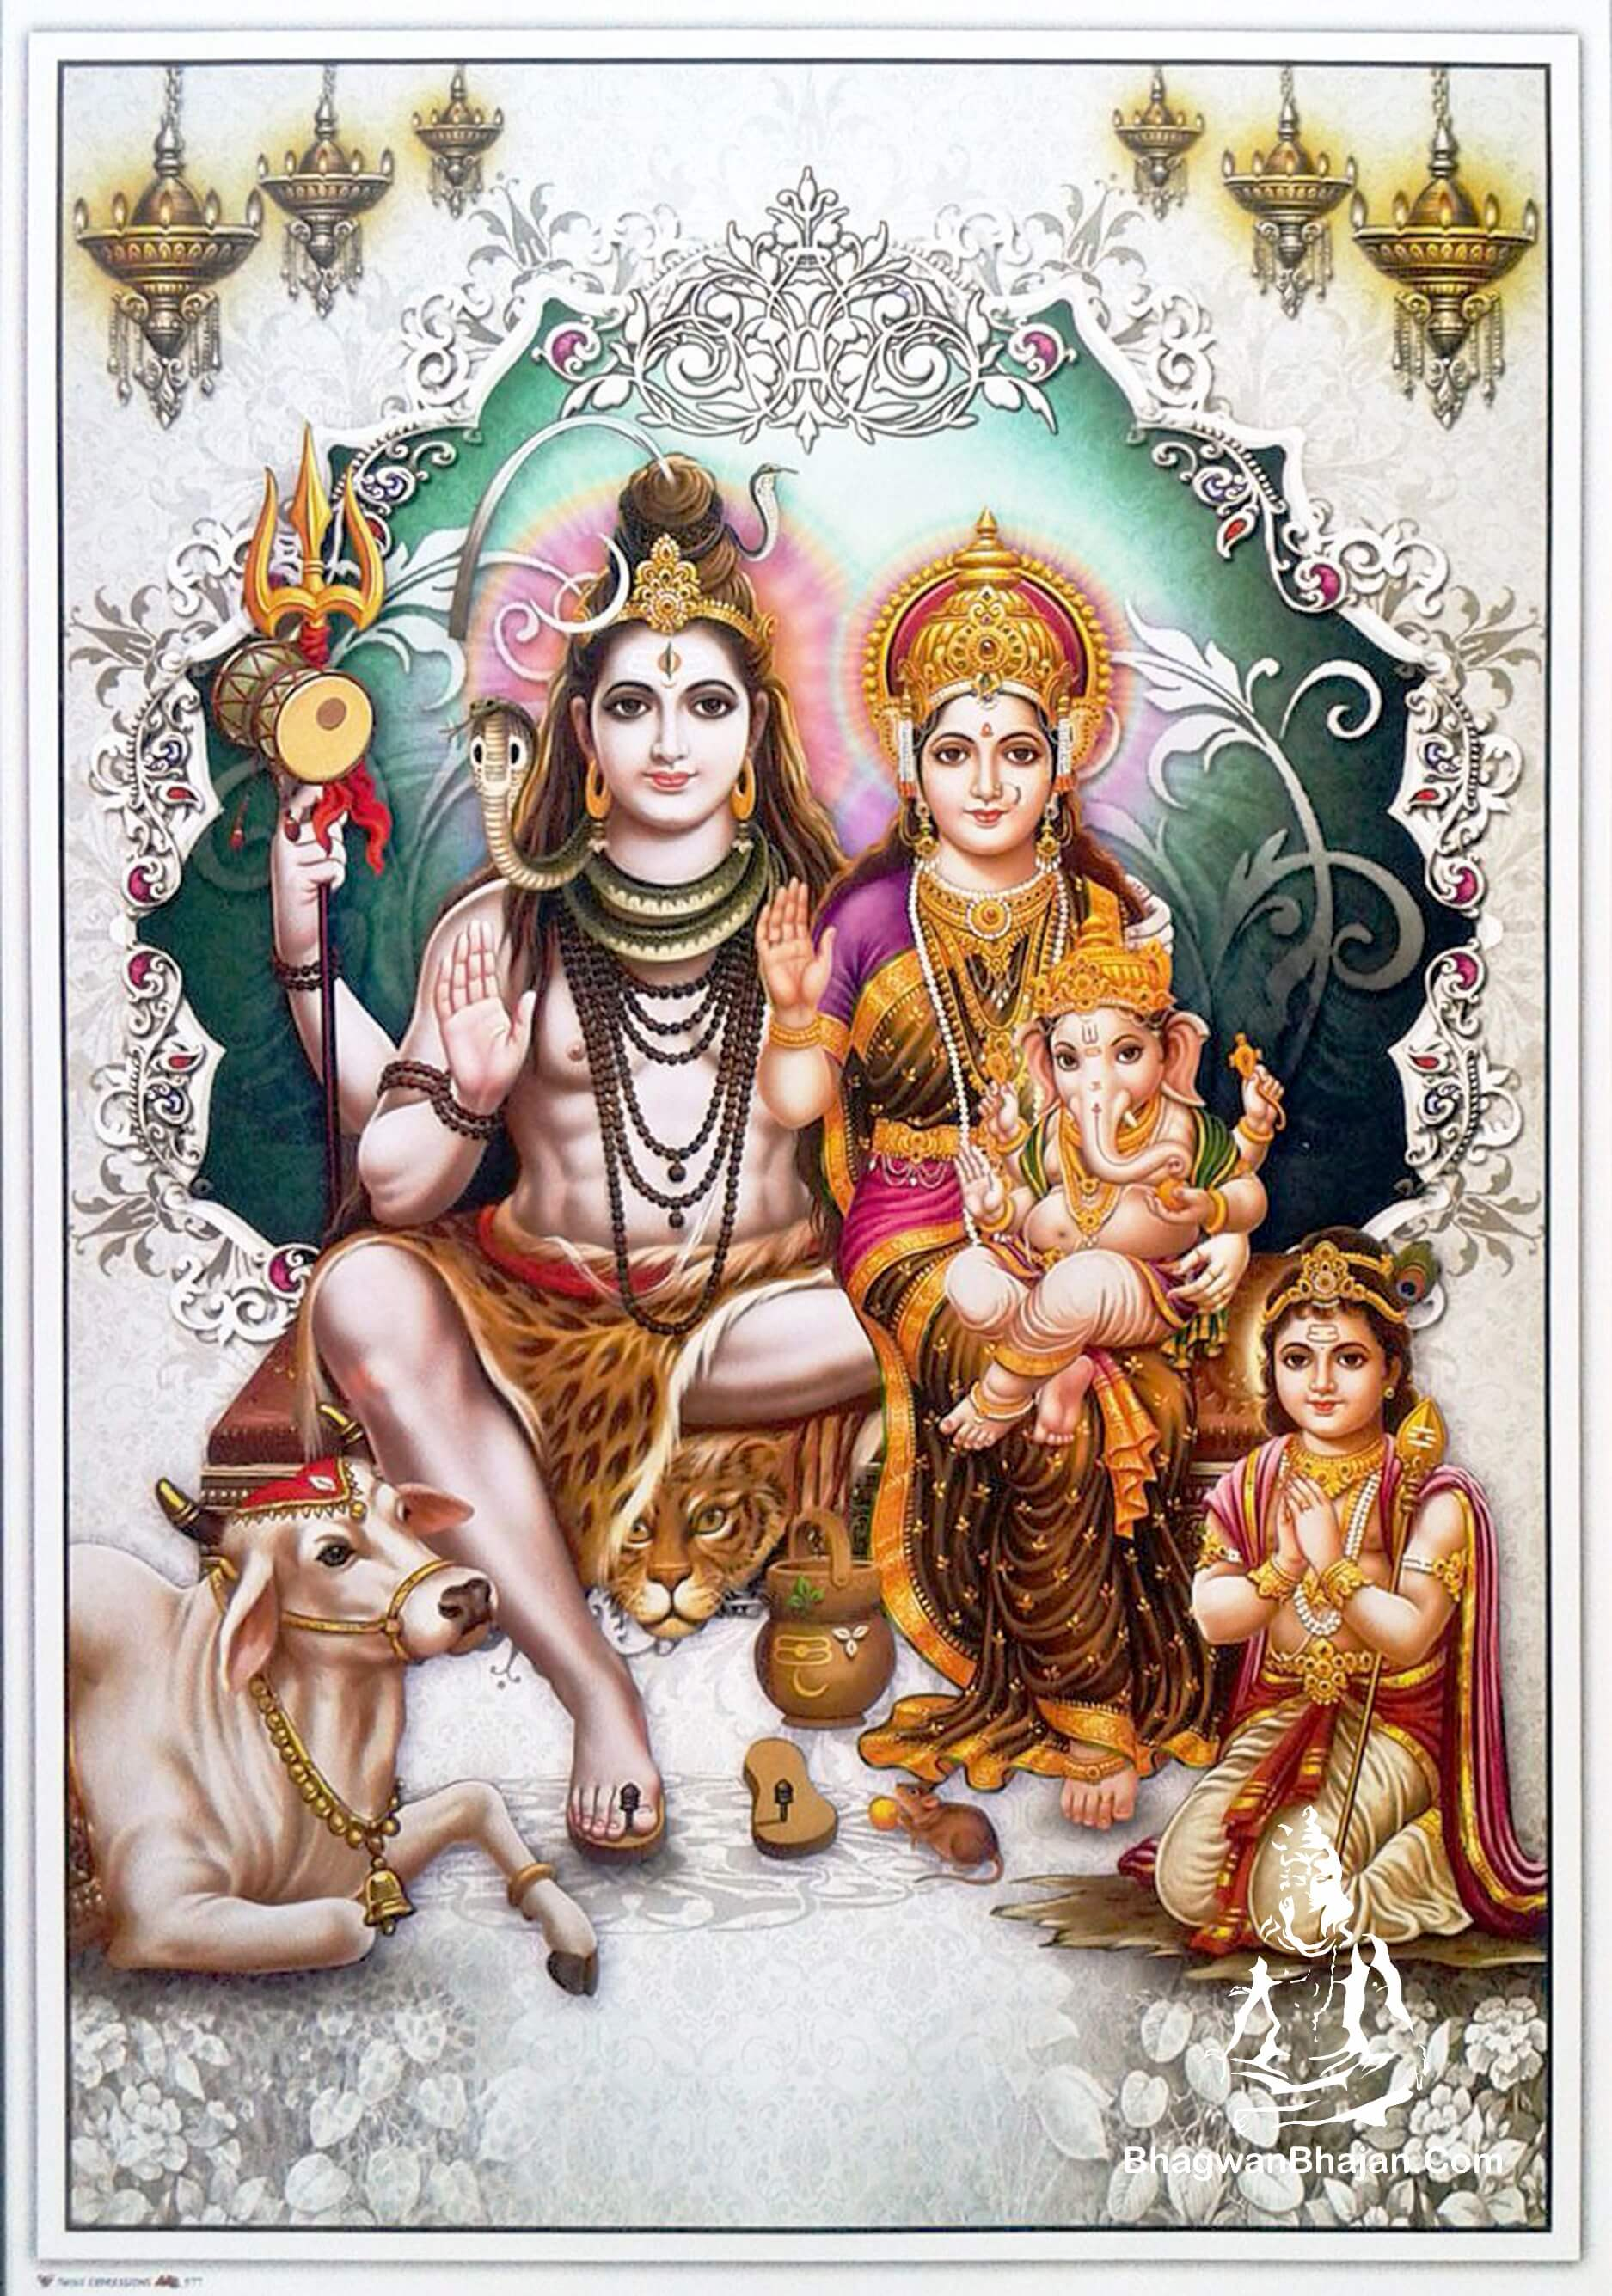 bhagwan shiv parivar wallpaper